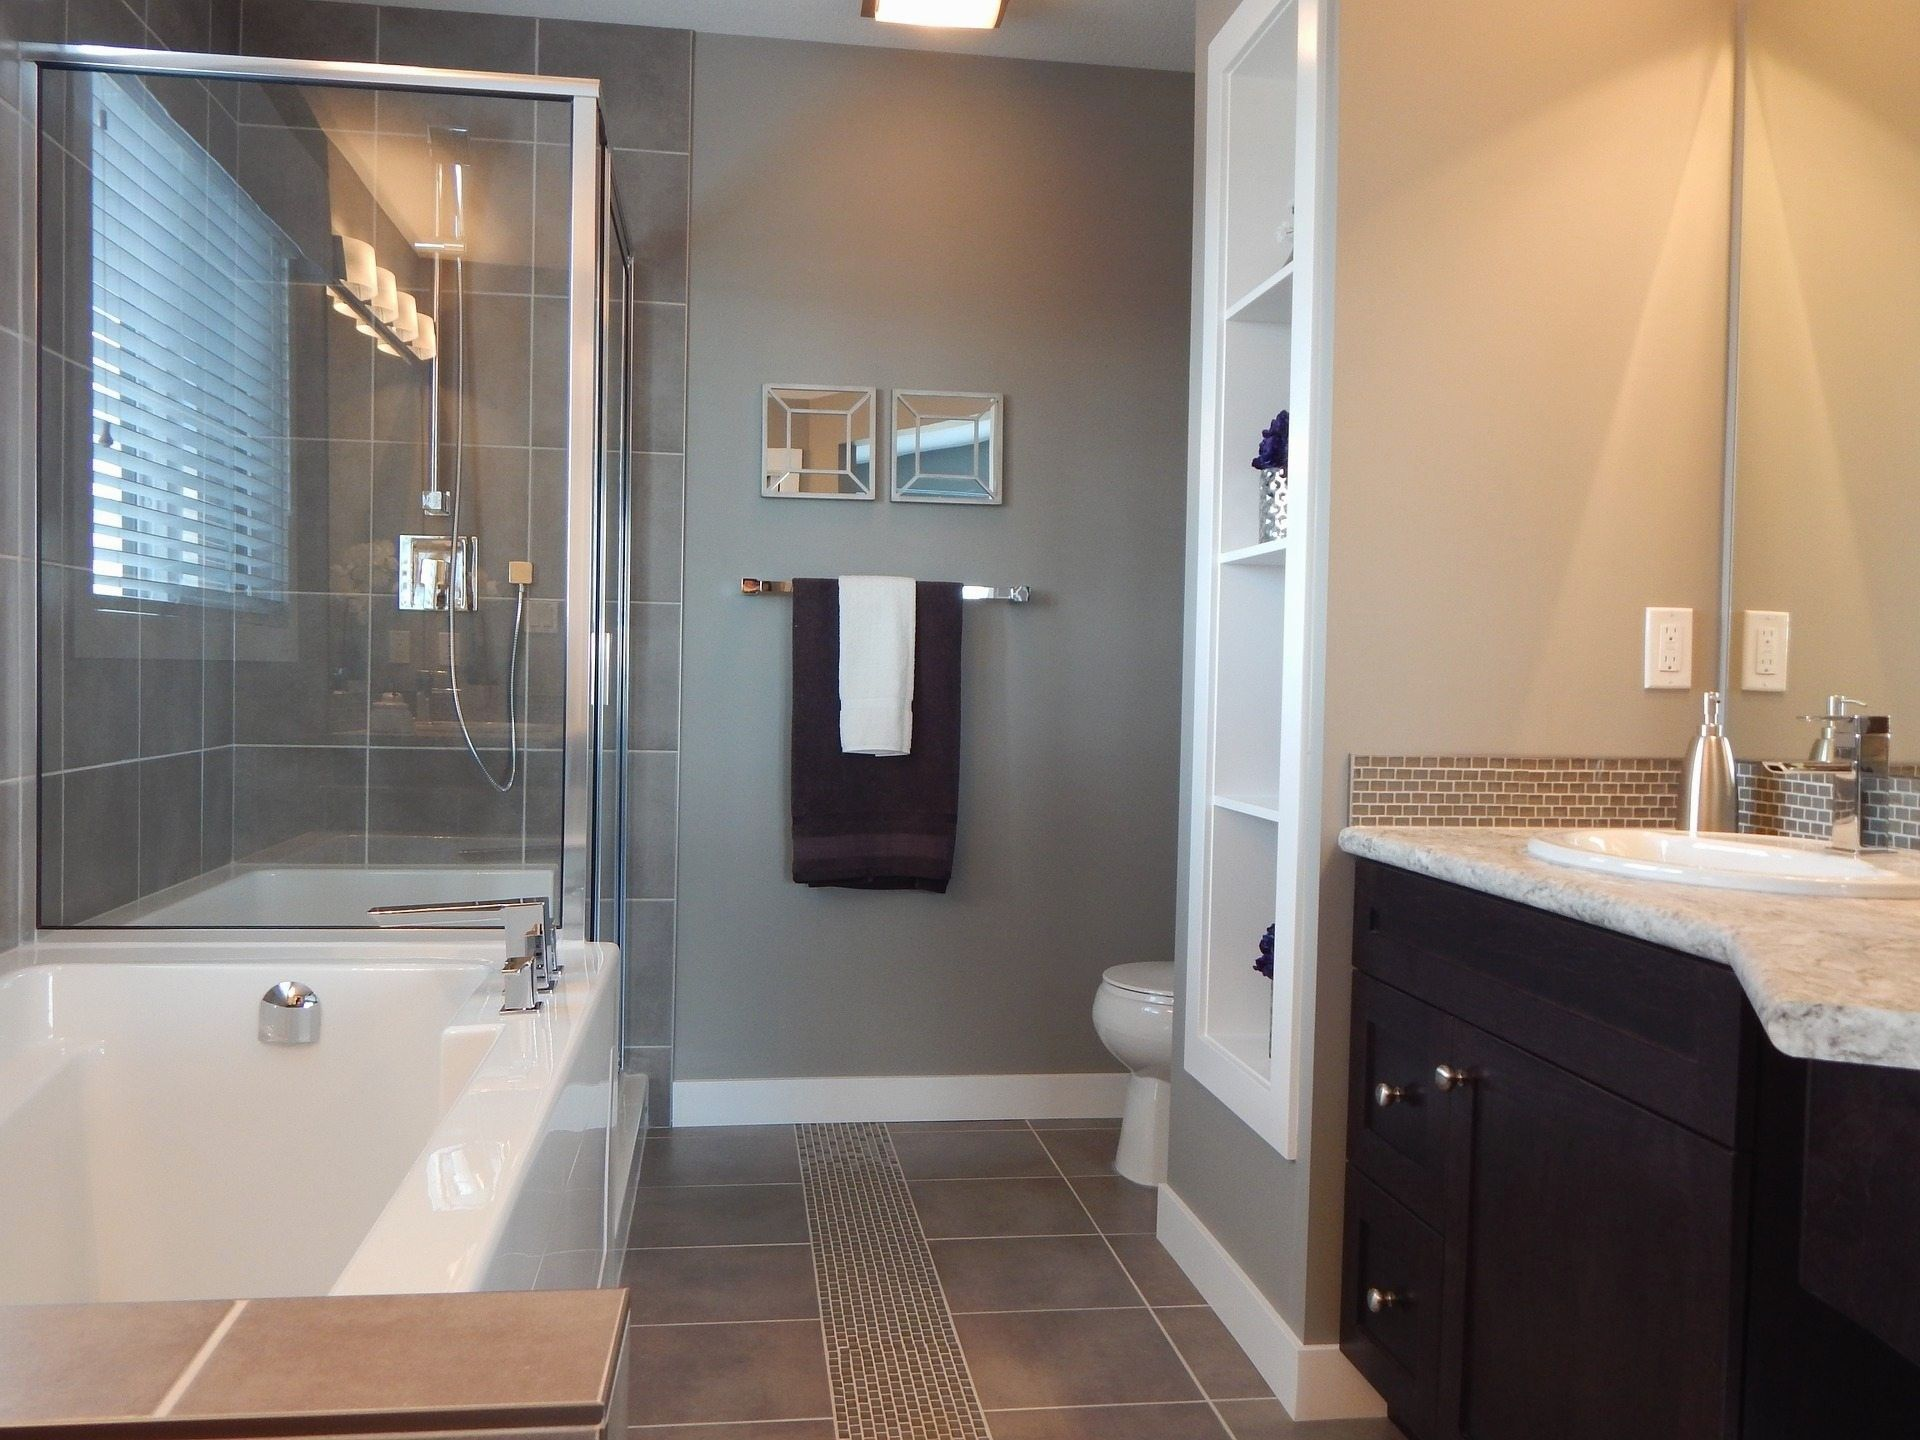 50 Images How Much Does Bathroom Remodel Cost With Images Full Bathroom Remodel Small Bathroom Layout Bathroom Remodel Cost